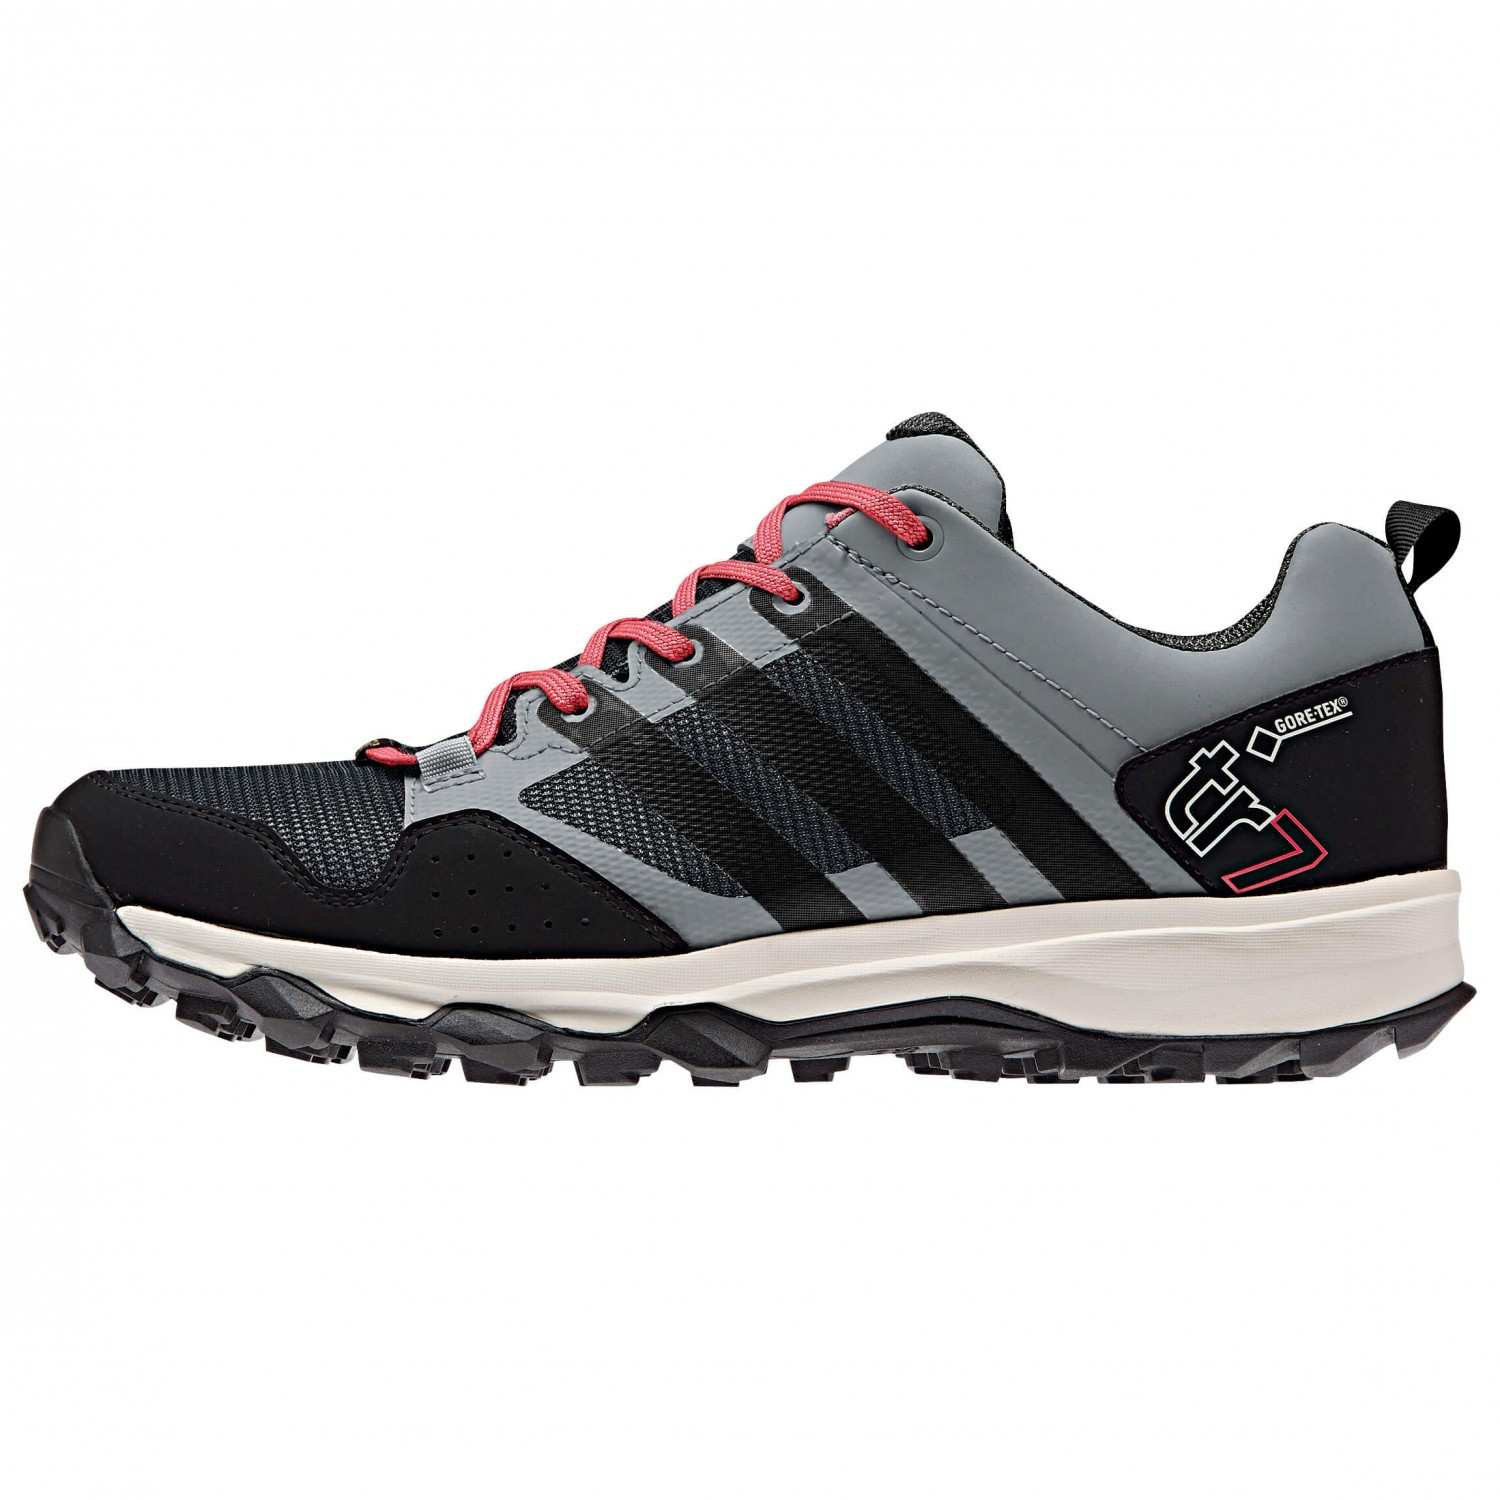 adidas - Women s Kanadia 7 Tr GTX - Trail running shoes ... 293e6ecdd